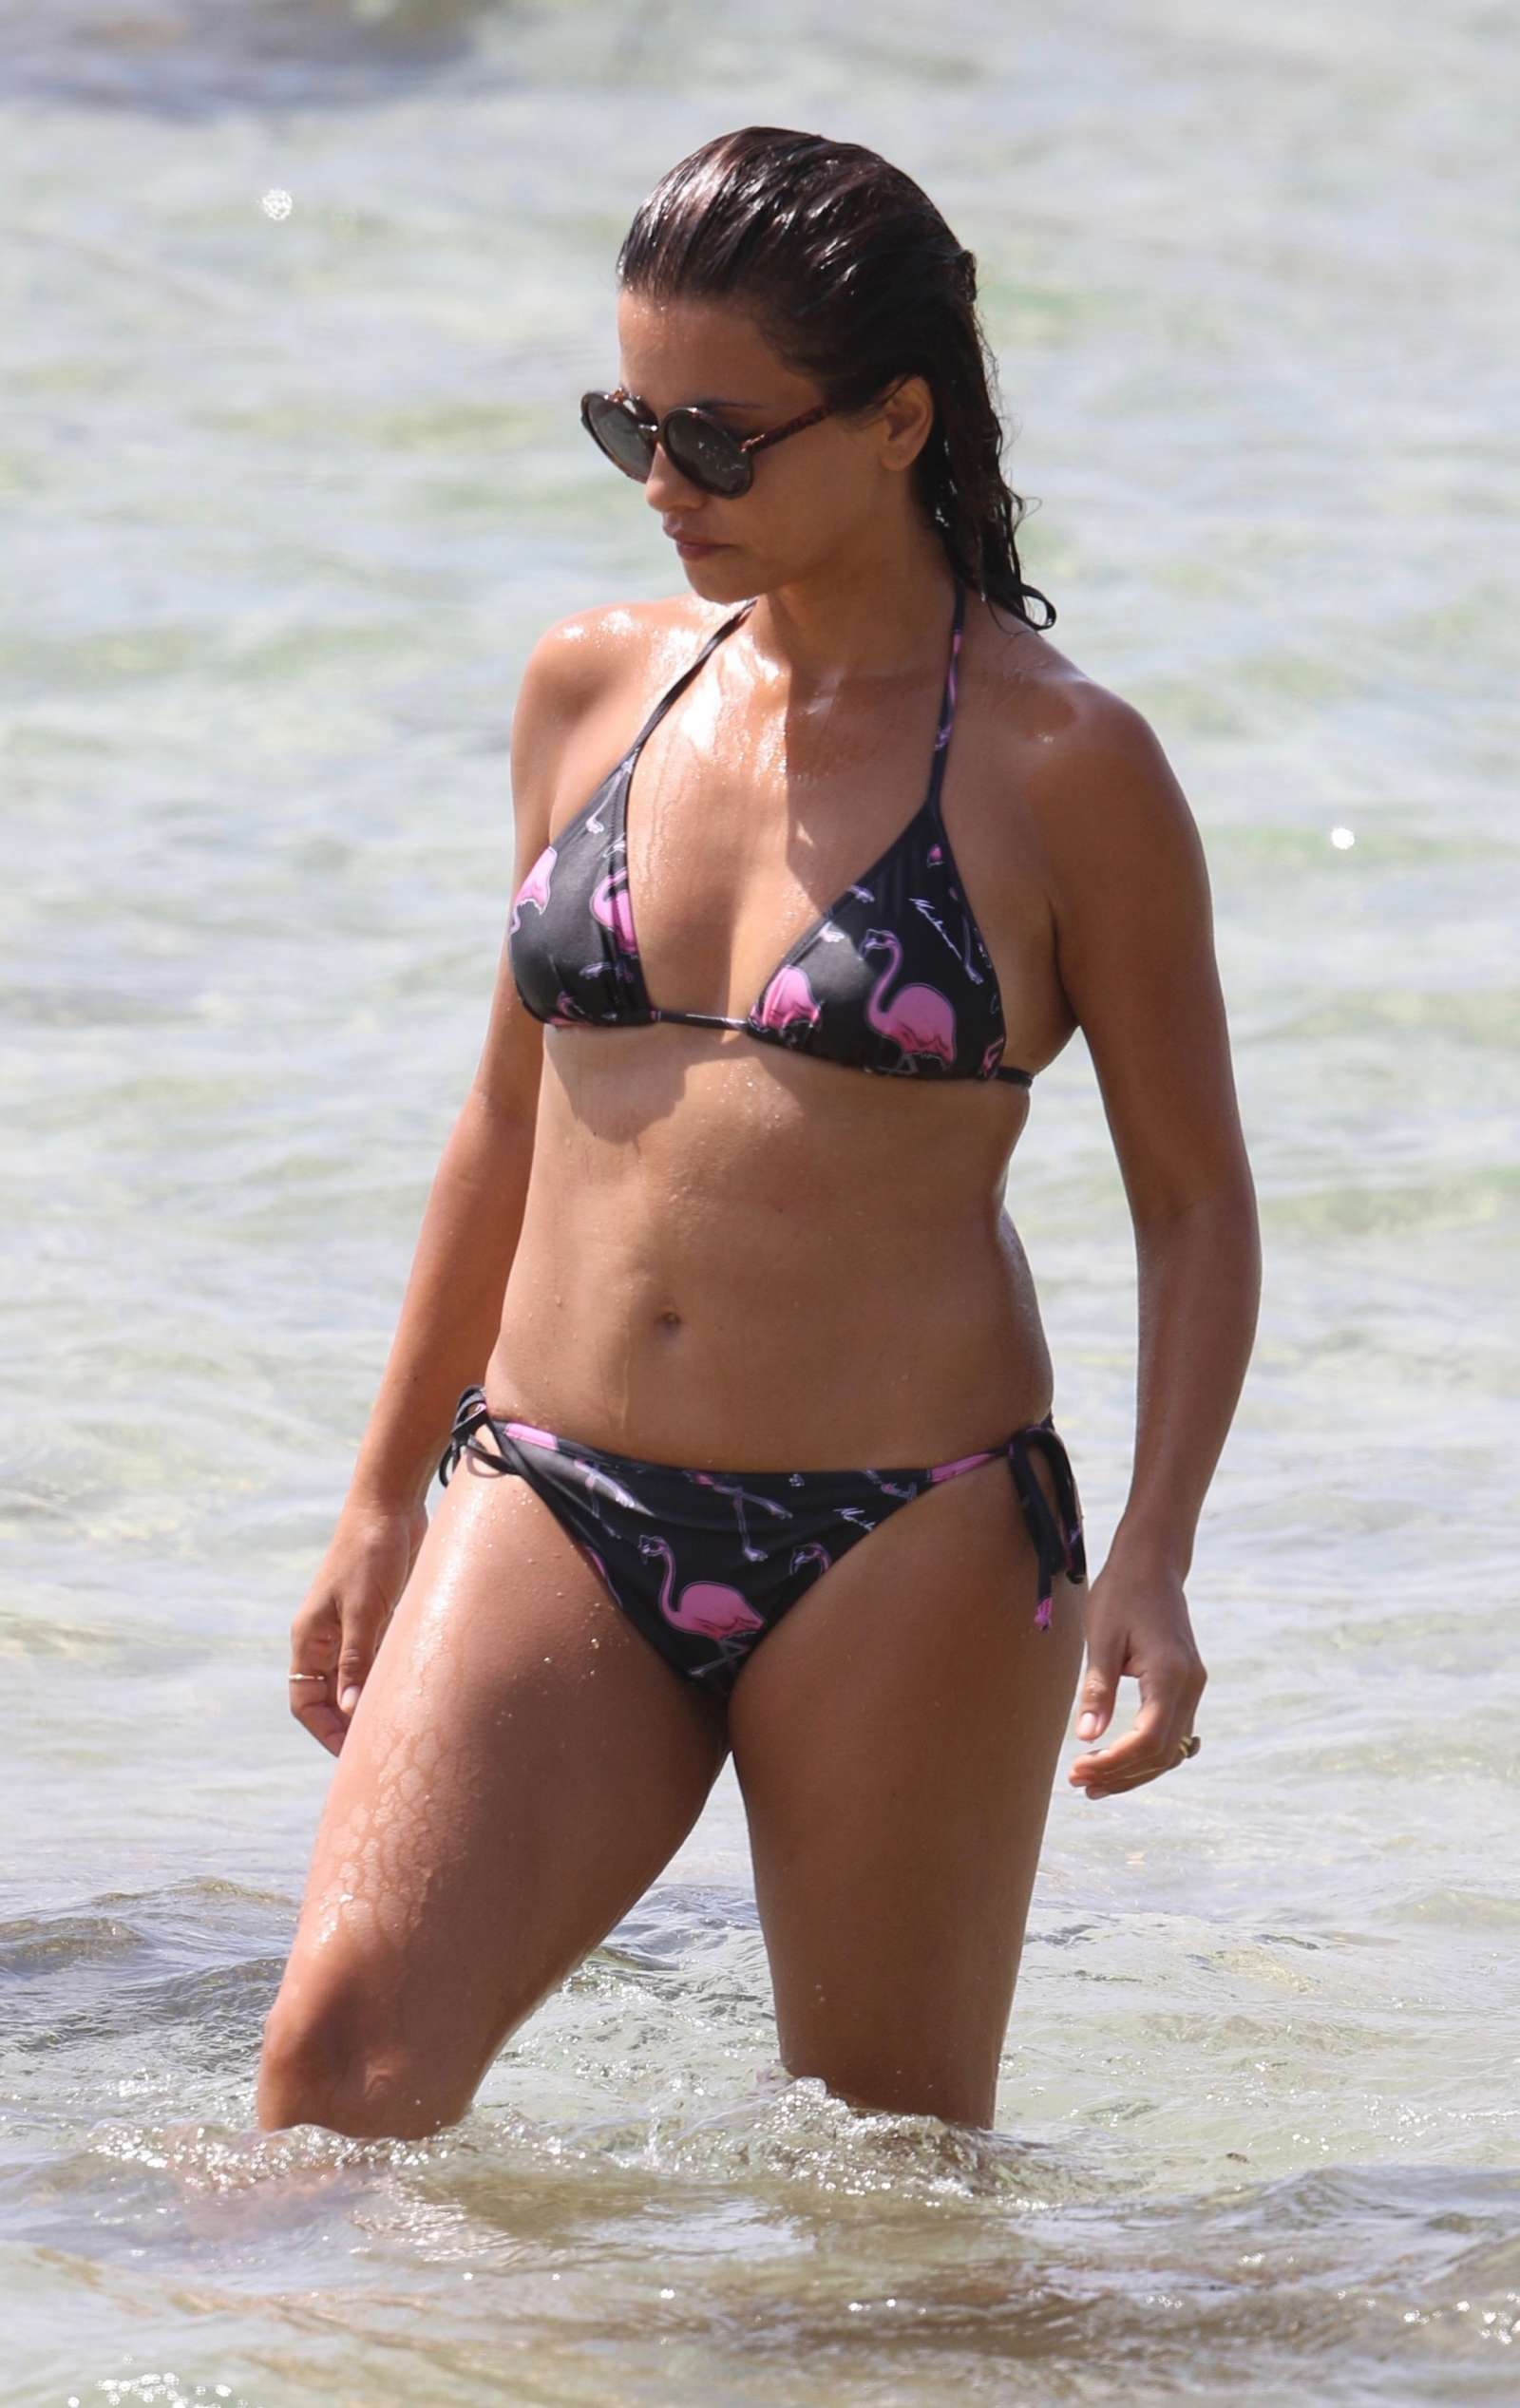 Monica Cruz 2017 : Monica Cruz in Bikini 2017 -46